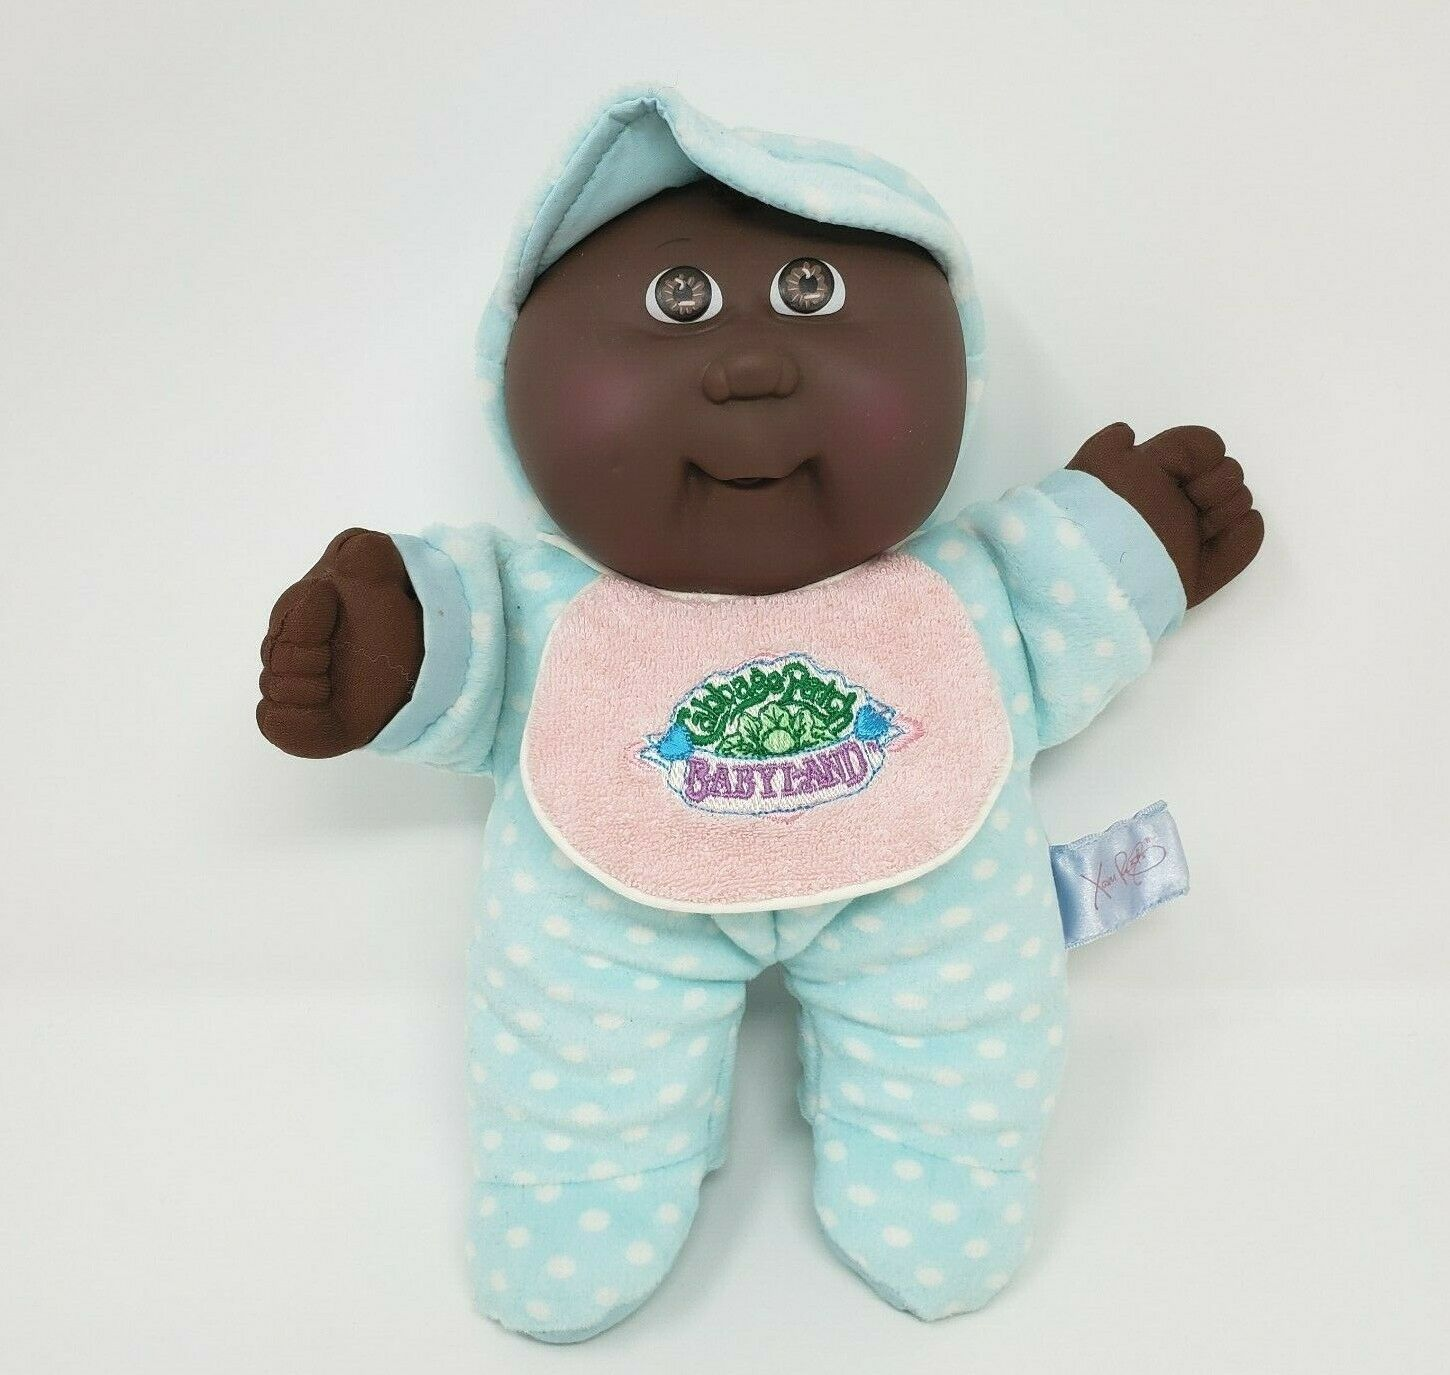 Primary image for VINTAGE CABBAGE PATCH KIDS BABYLAND AFRICAN AMERICAN STUFFED ANIMAL PLUSH DOLL